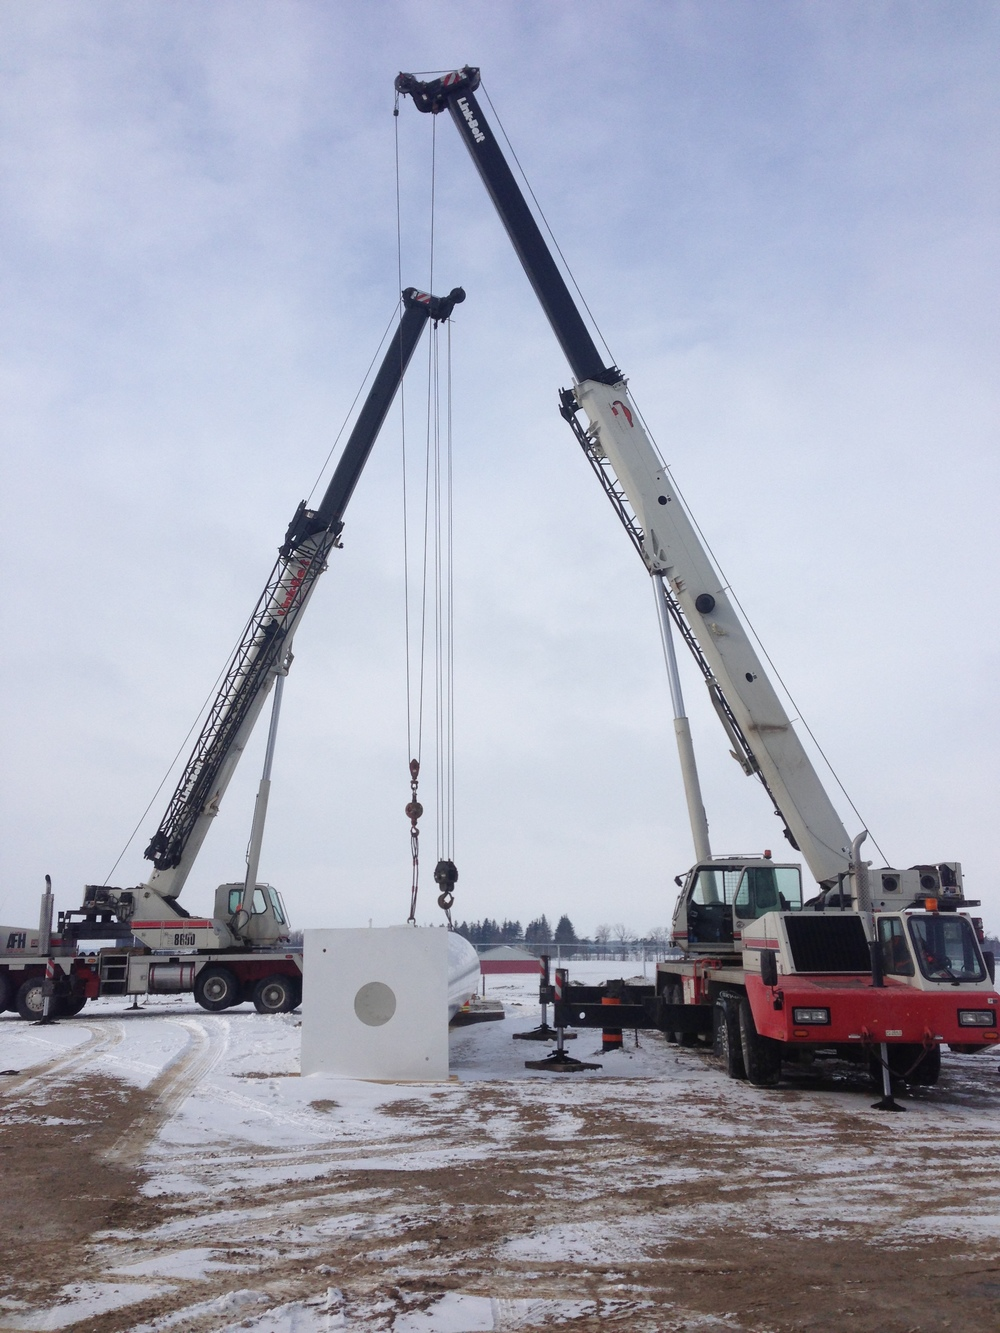 Two cranes are needed to lift propane tank near Listowel